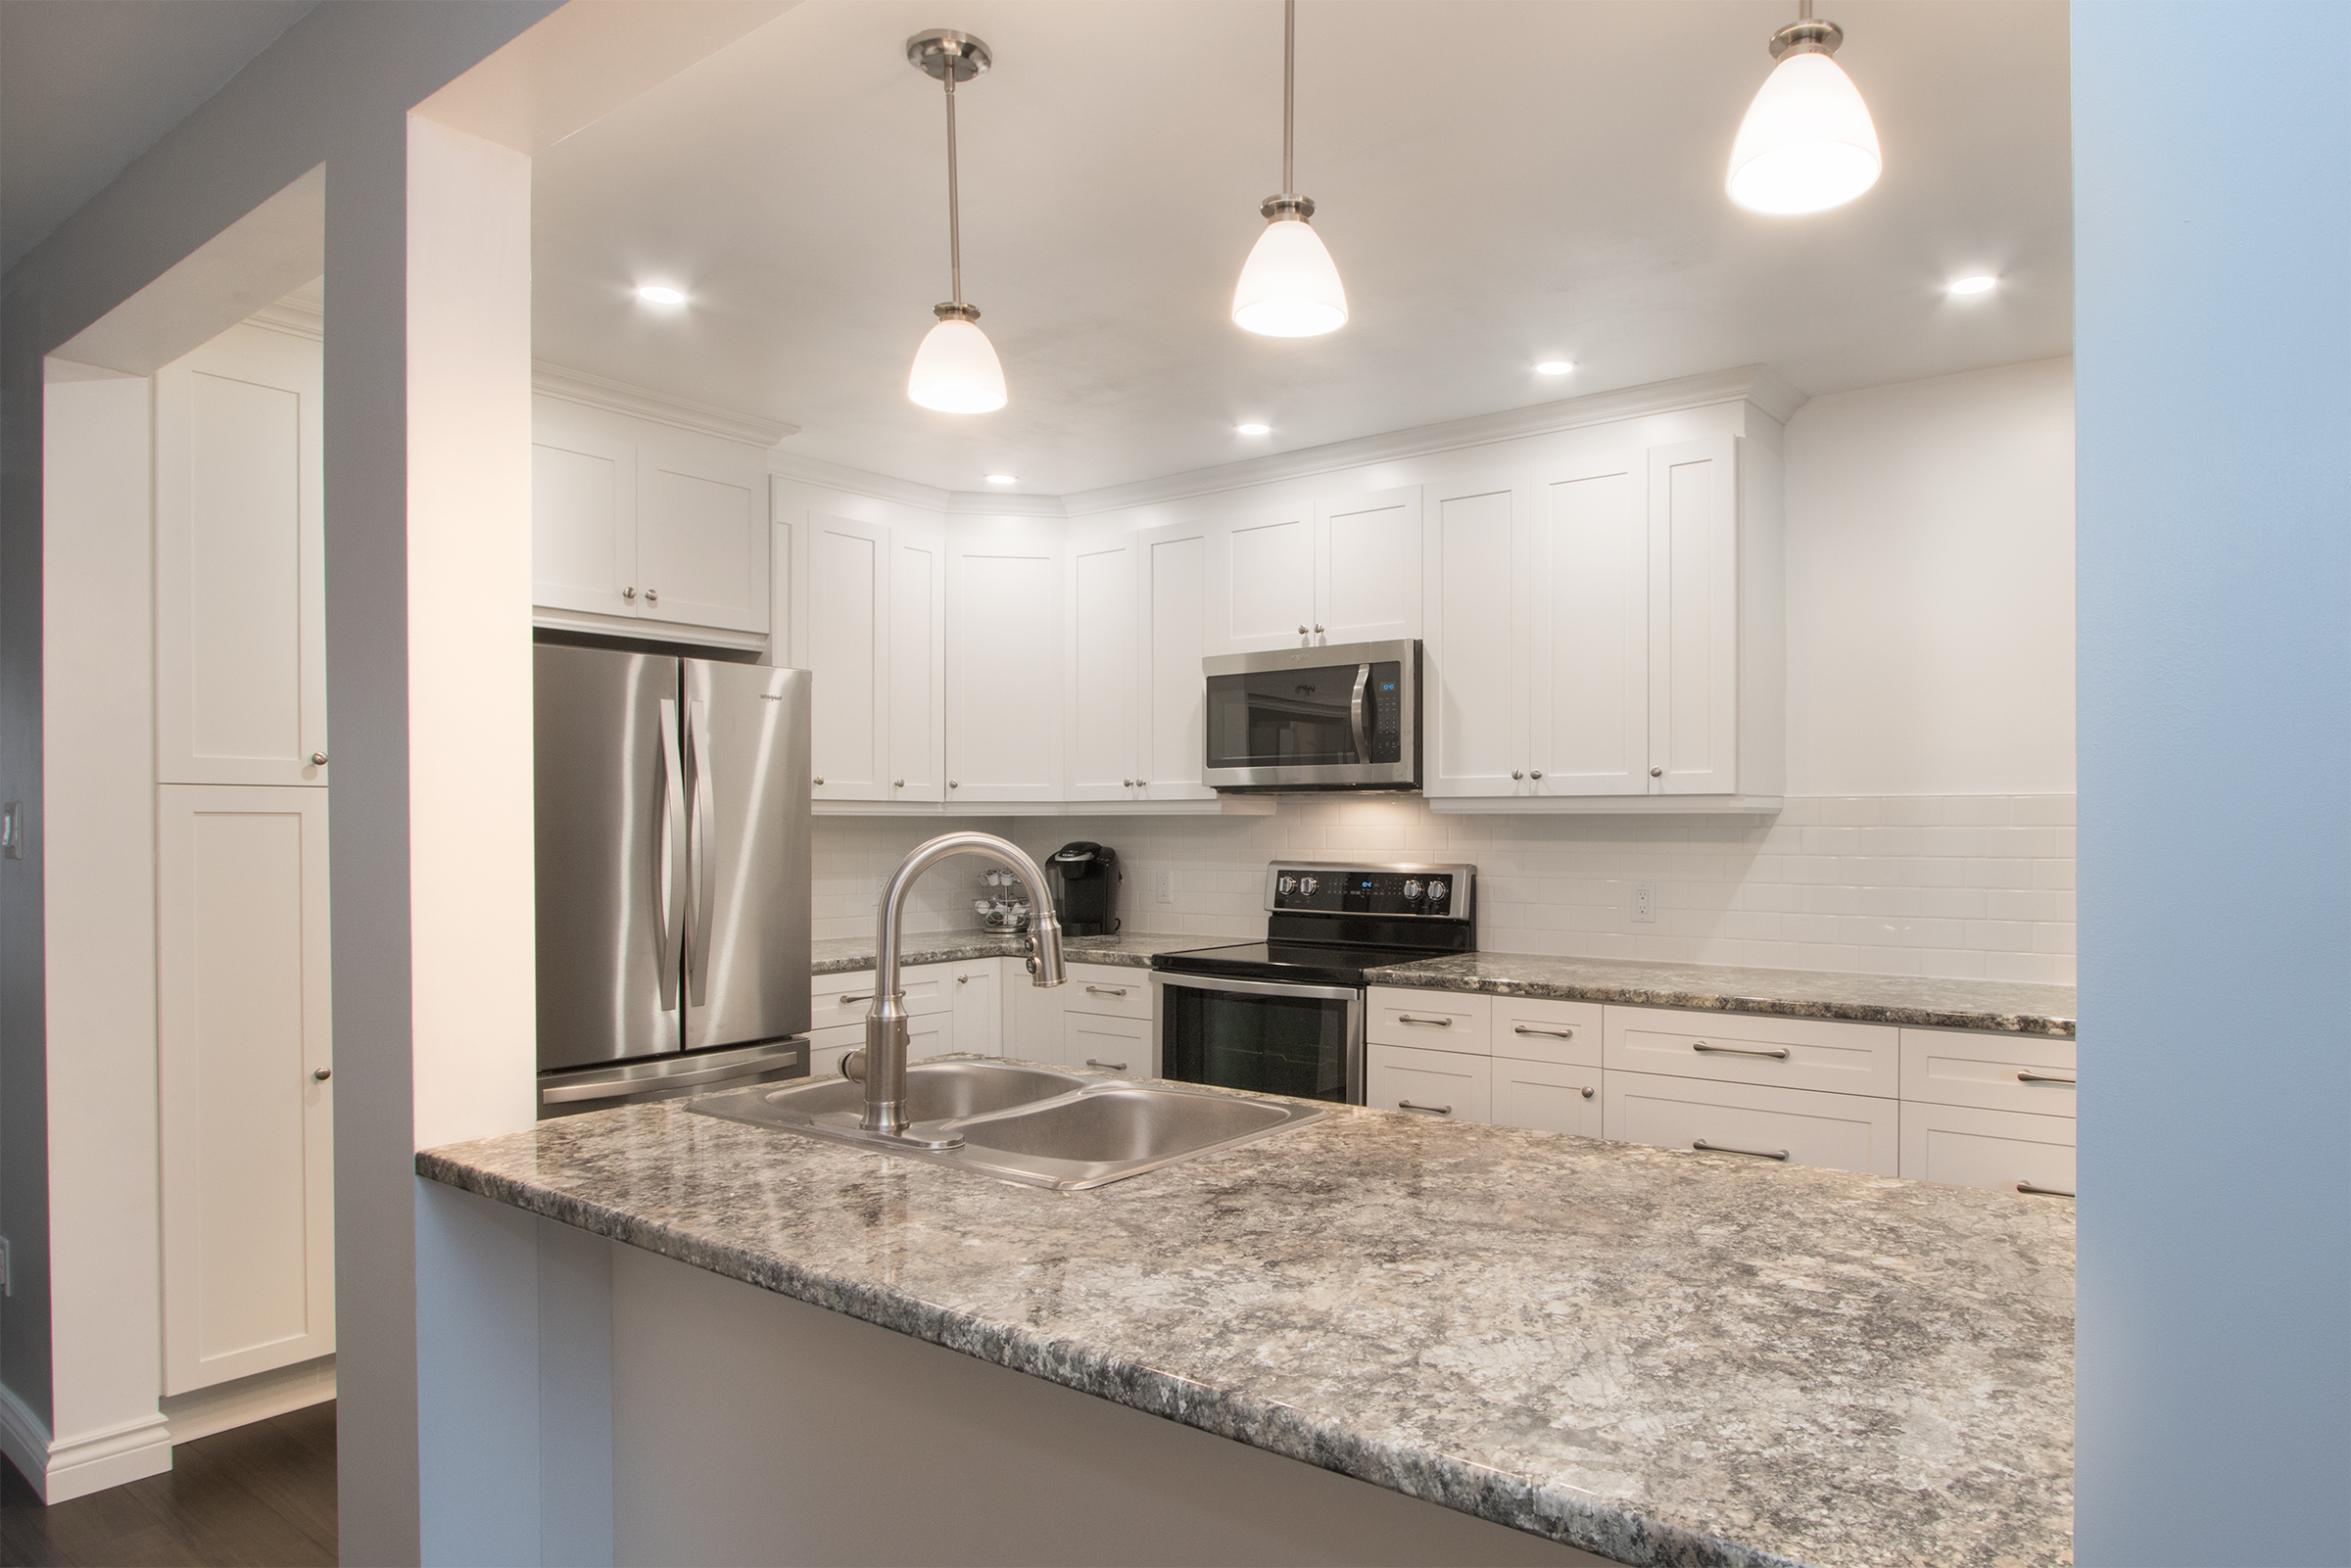 Are Laminate Countertops Making A Comeback Multi Trade Building Services